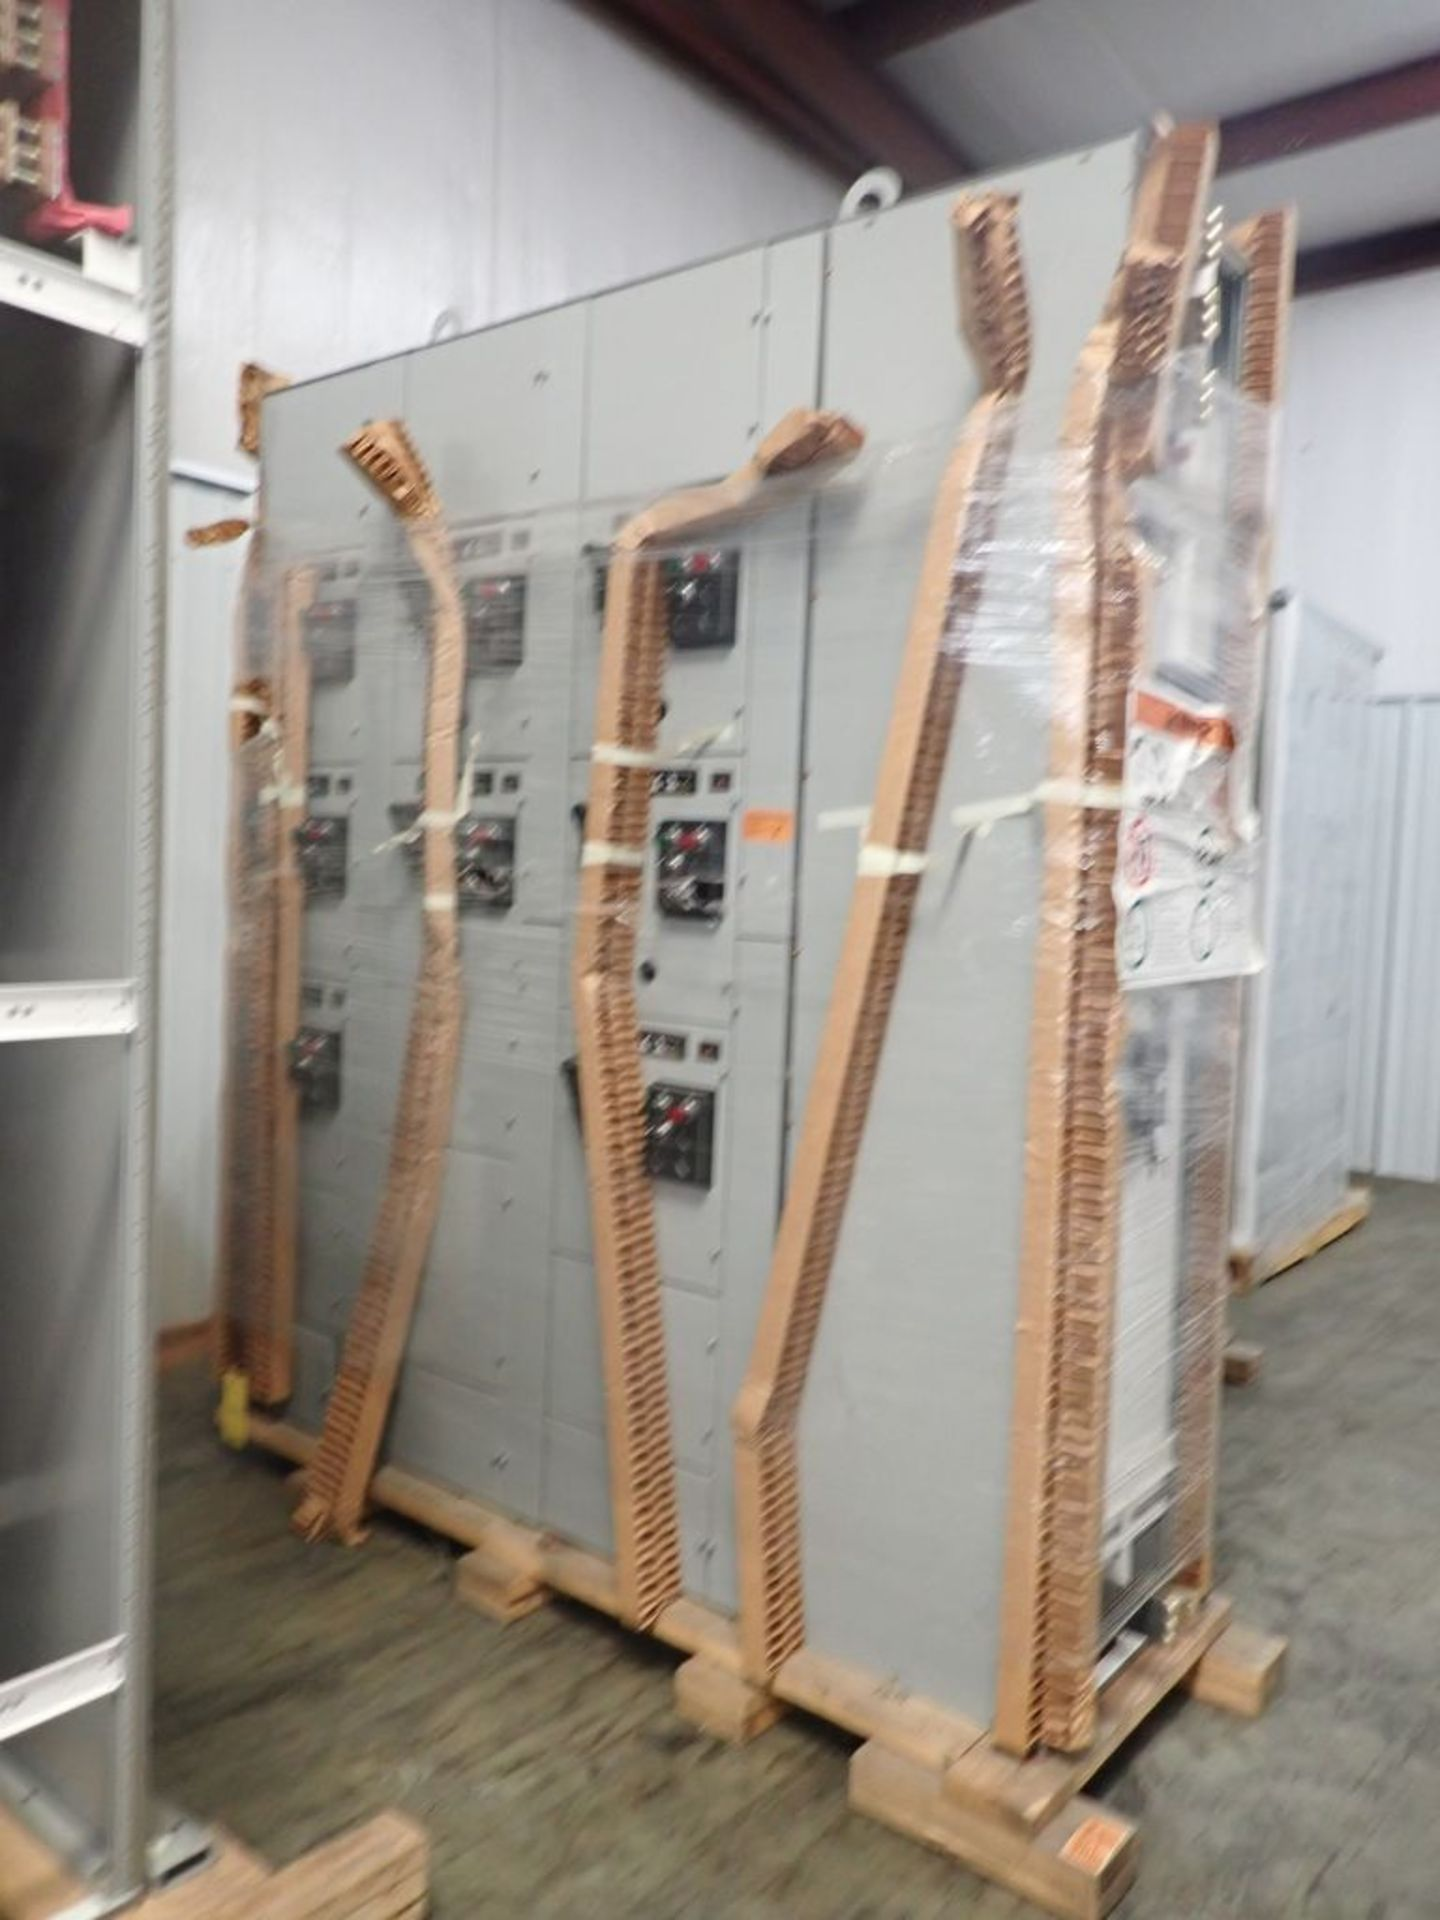 Eaton Freedom 2100 Series Motor Control Center | (11) F206-30A-10HP; (5) F206-15A-10HP; (1) SVX900- - Image 2 of 102